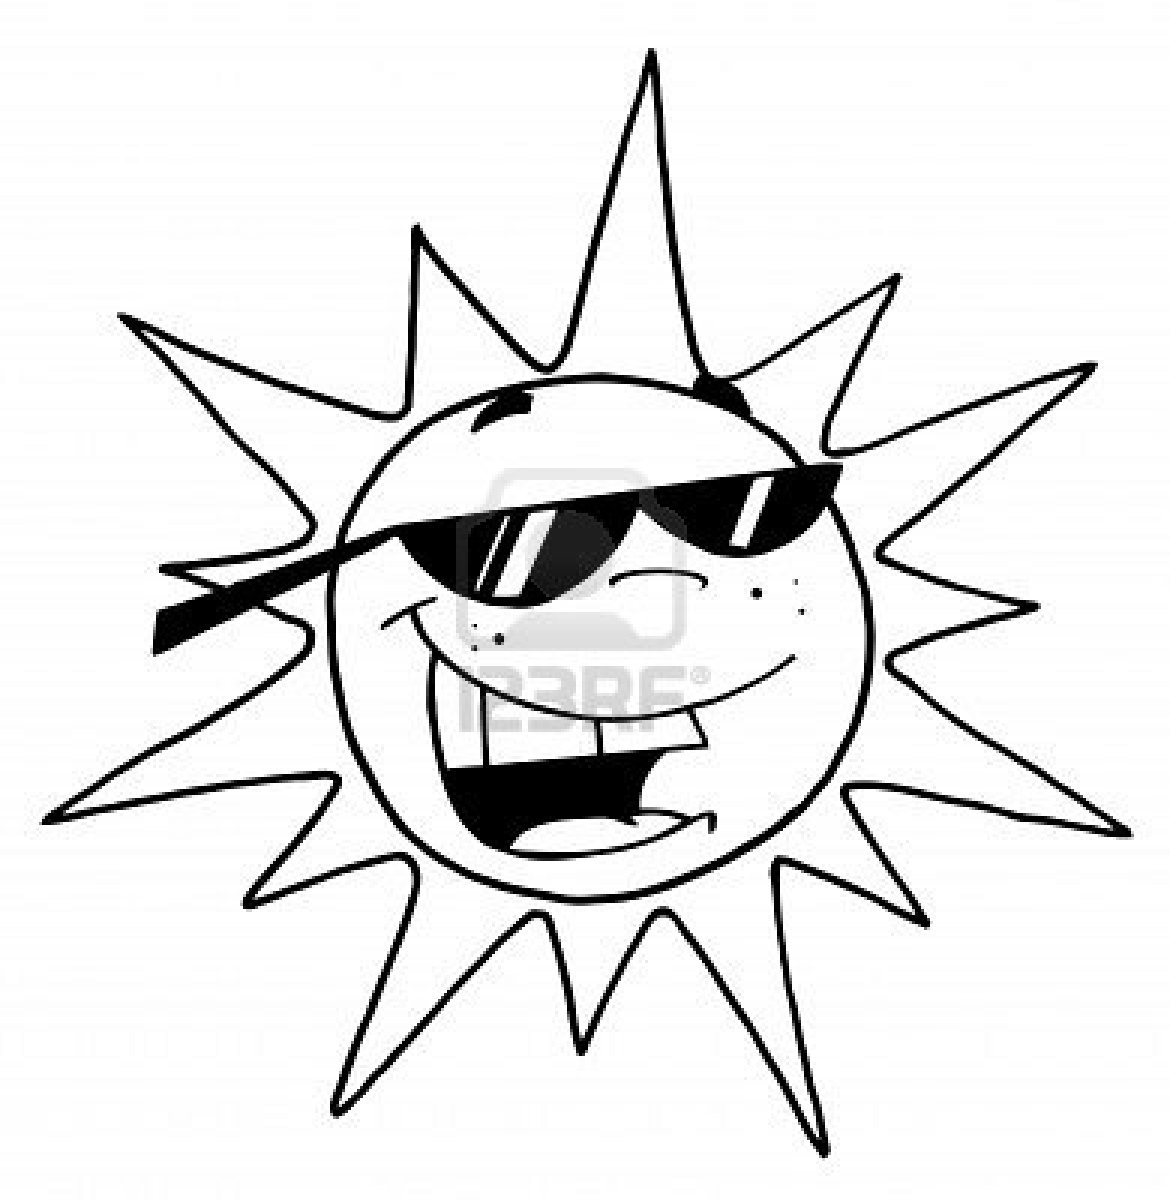 Smiling Sun Clip Art Black And White | Clipart Panda - Free ...